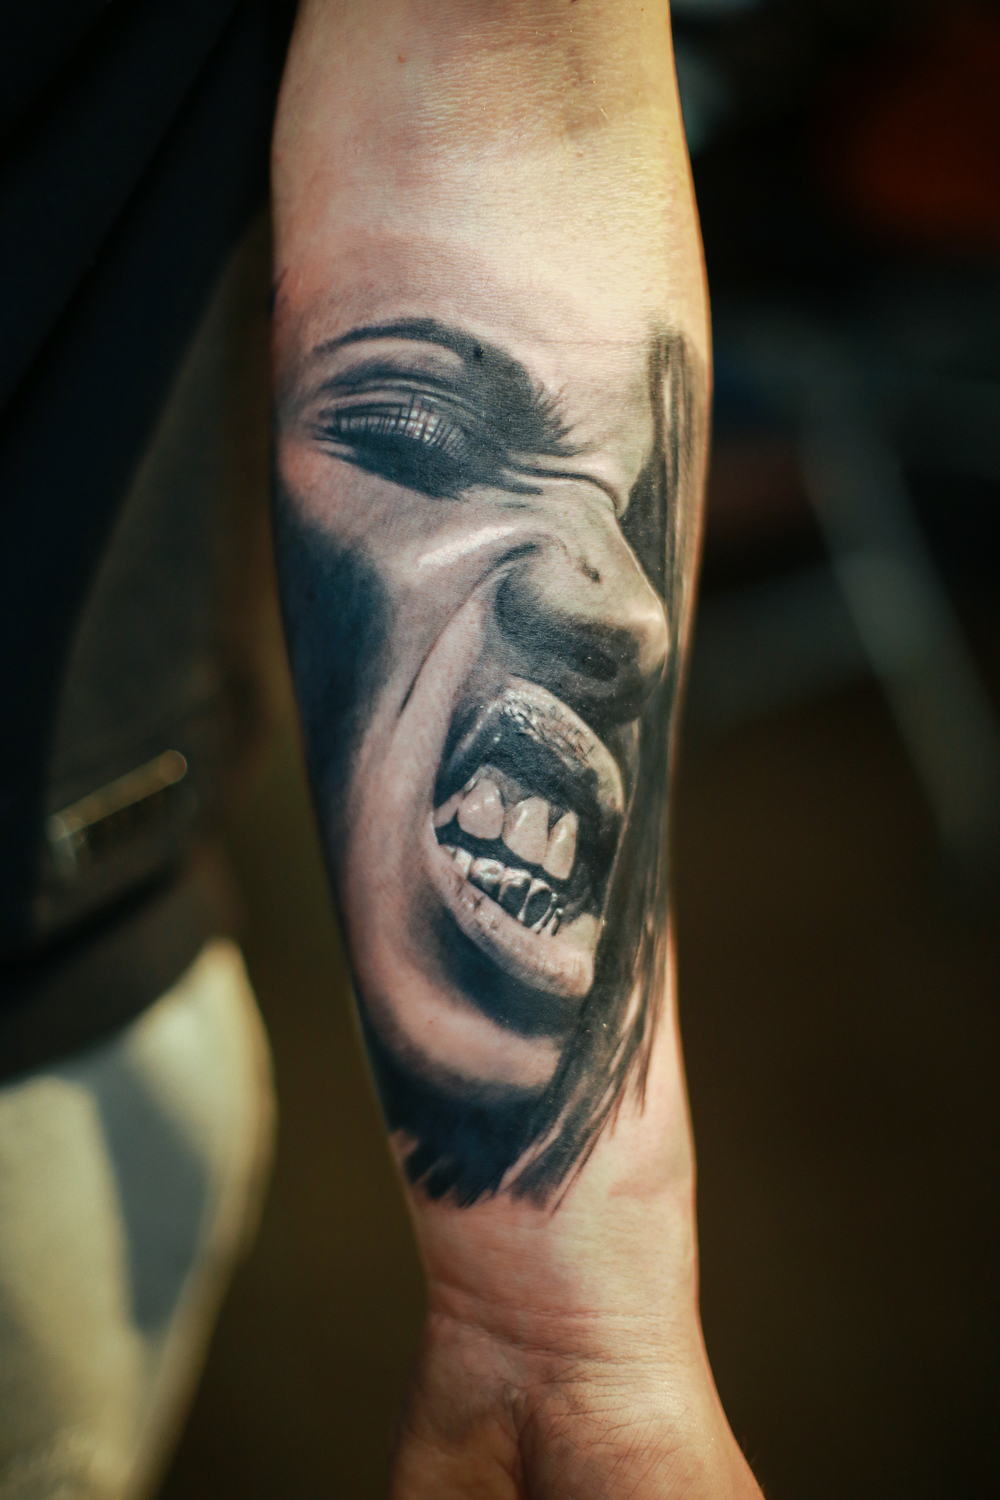 scoot-ink-tattoo-grills-freshly-inked.jpg